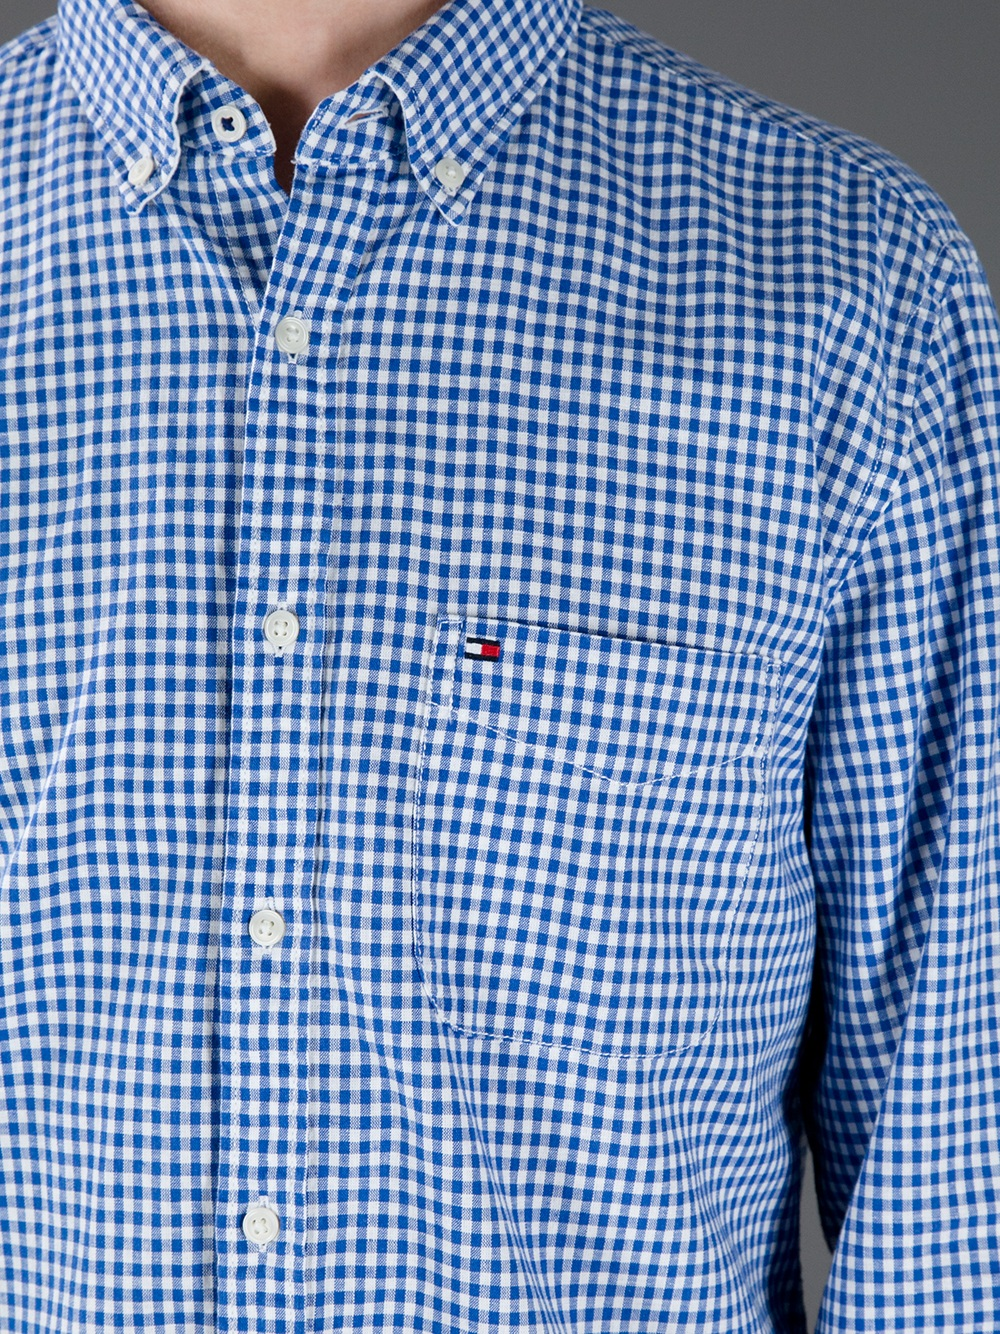 tommy hilfiger gingham shirt in blue for men lyst